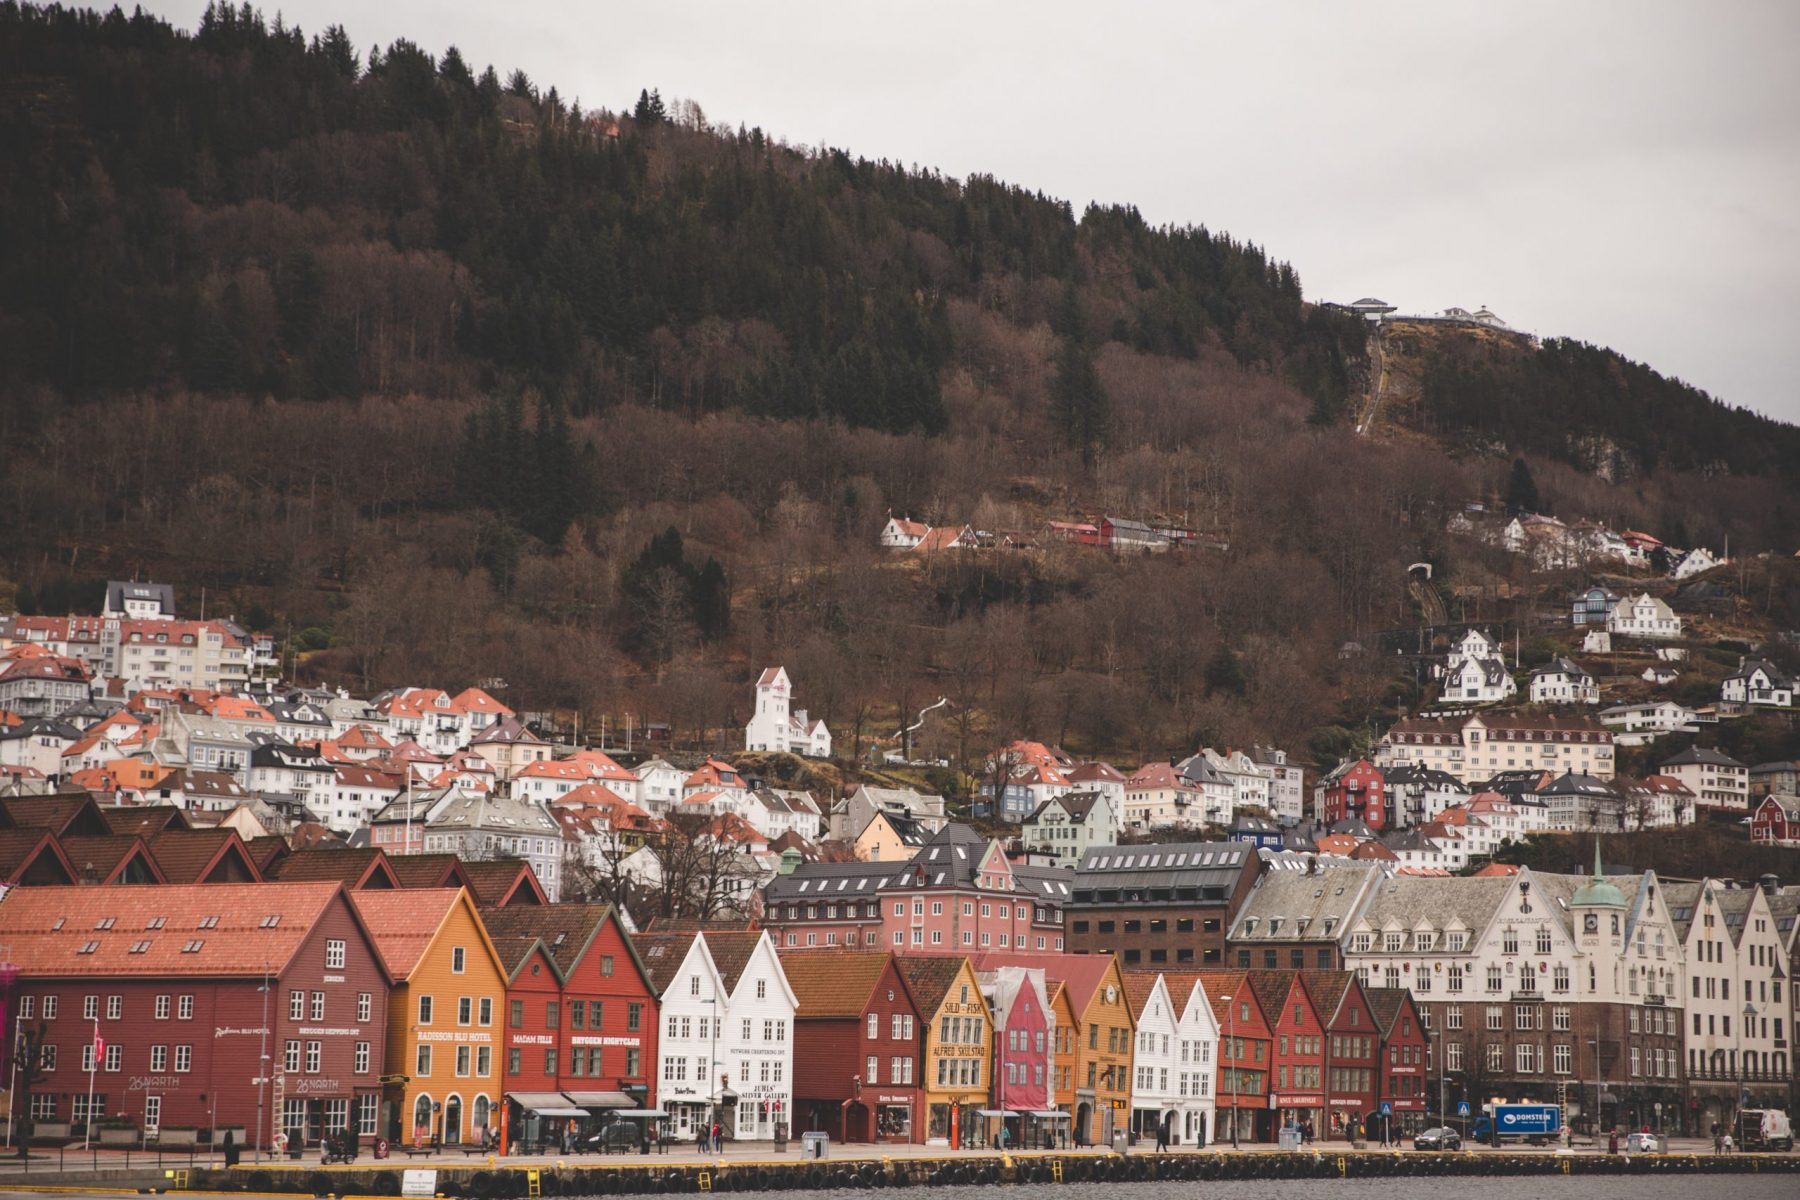 The red, yellow, white, and brown buildings that make up Bryggen in Bergen, Norway as seen from a fjord cruise boat